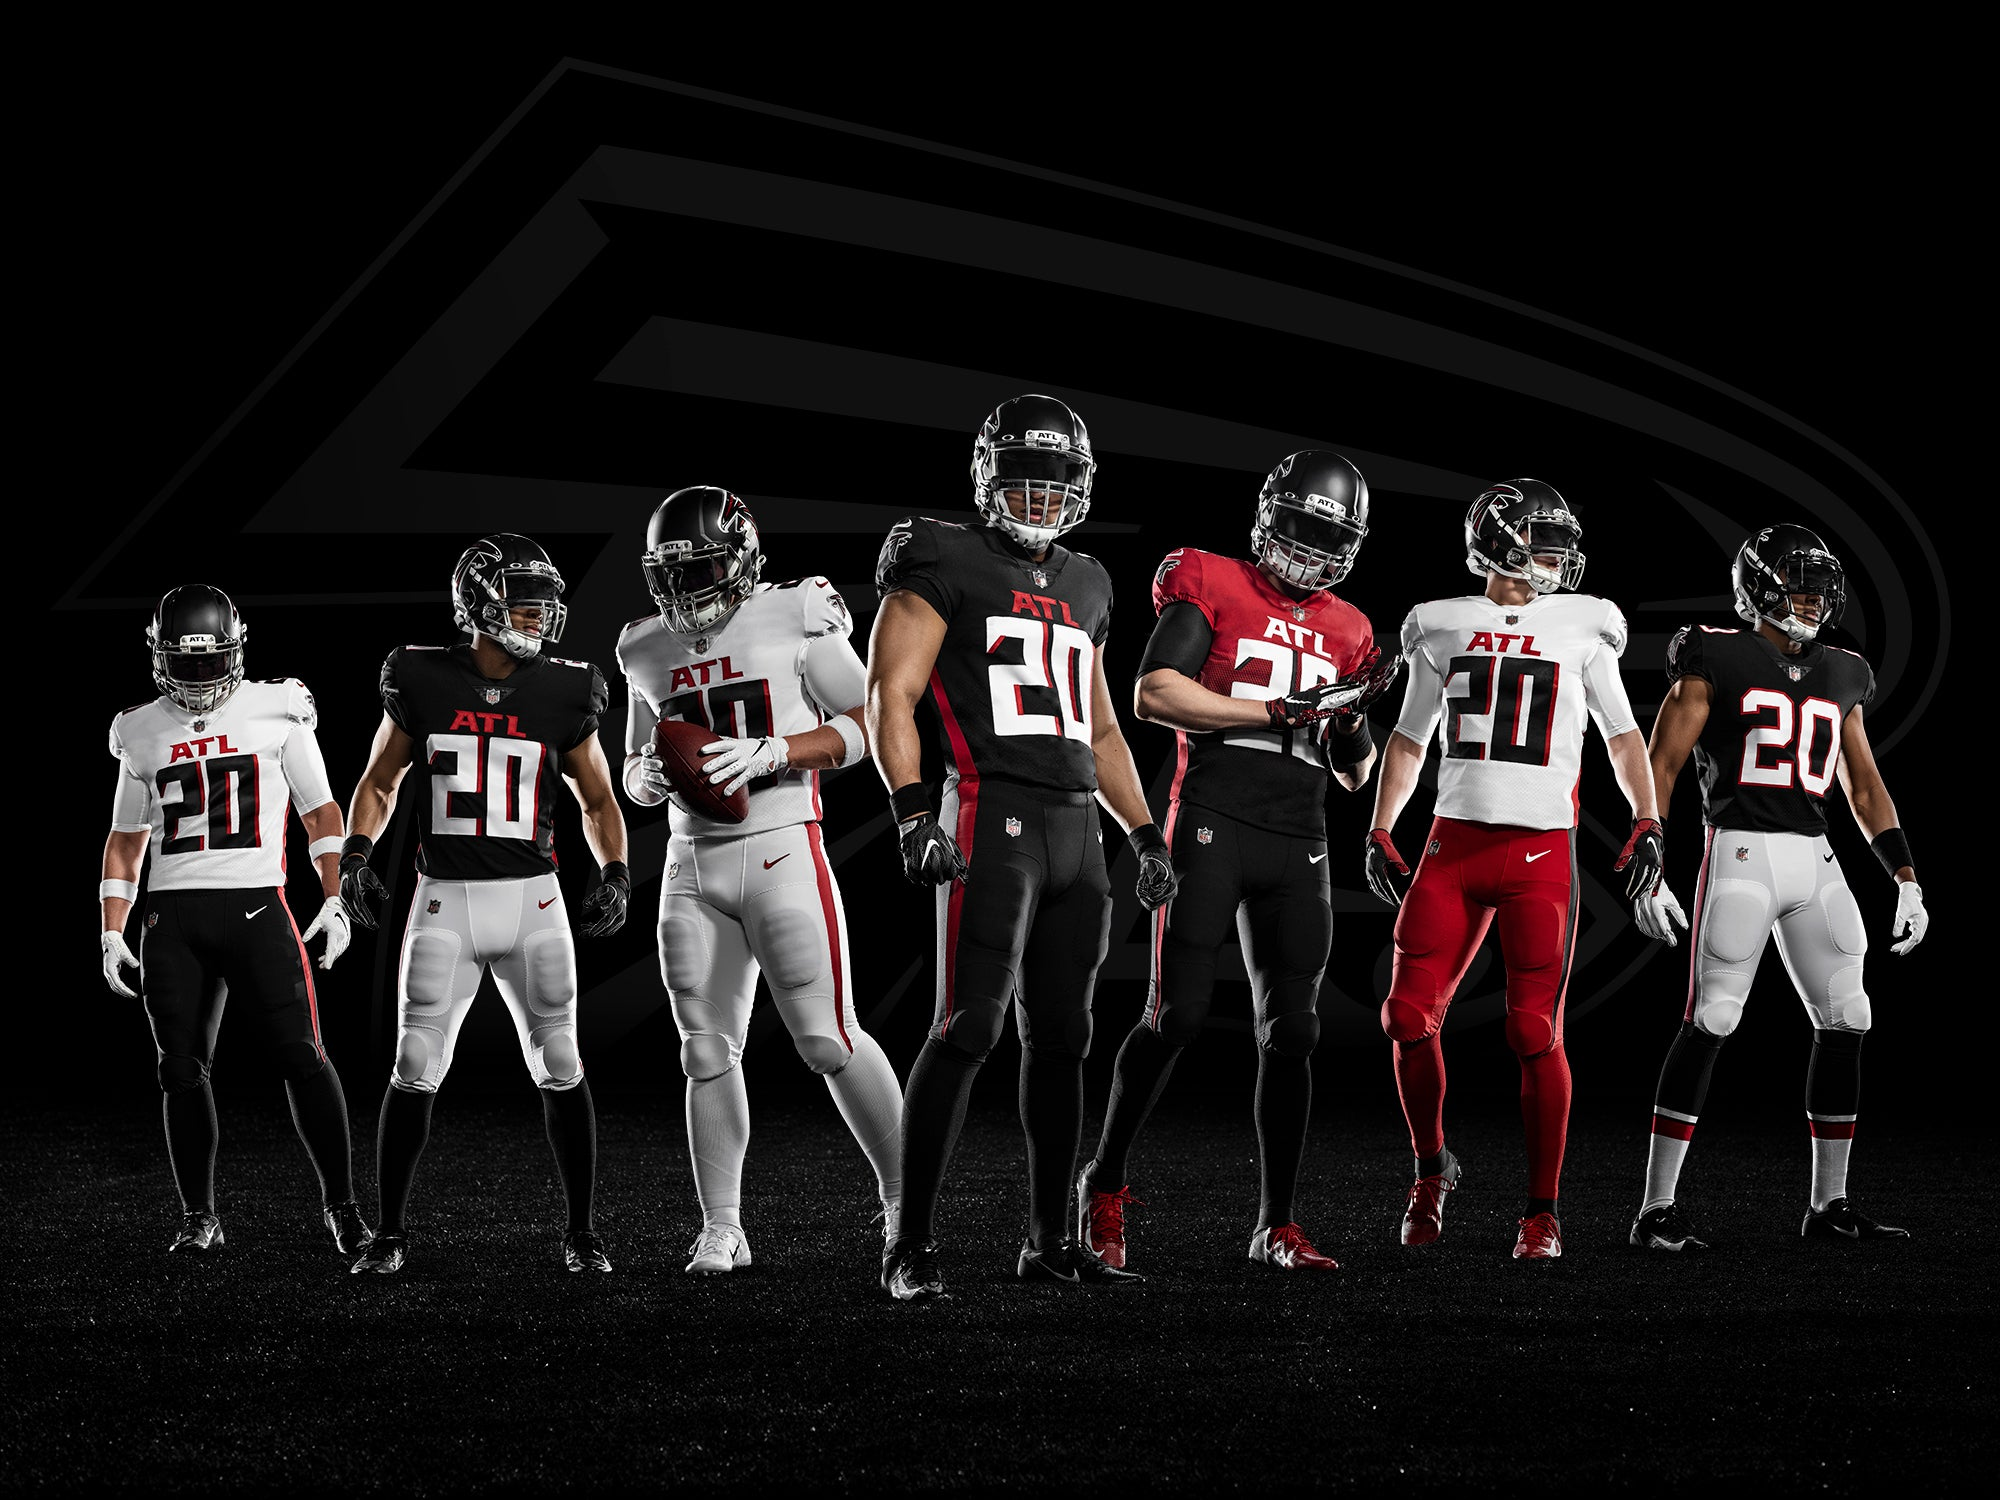 Full Closet Hero Composite of all different combinations of jersey tops and bottoms